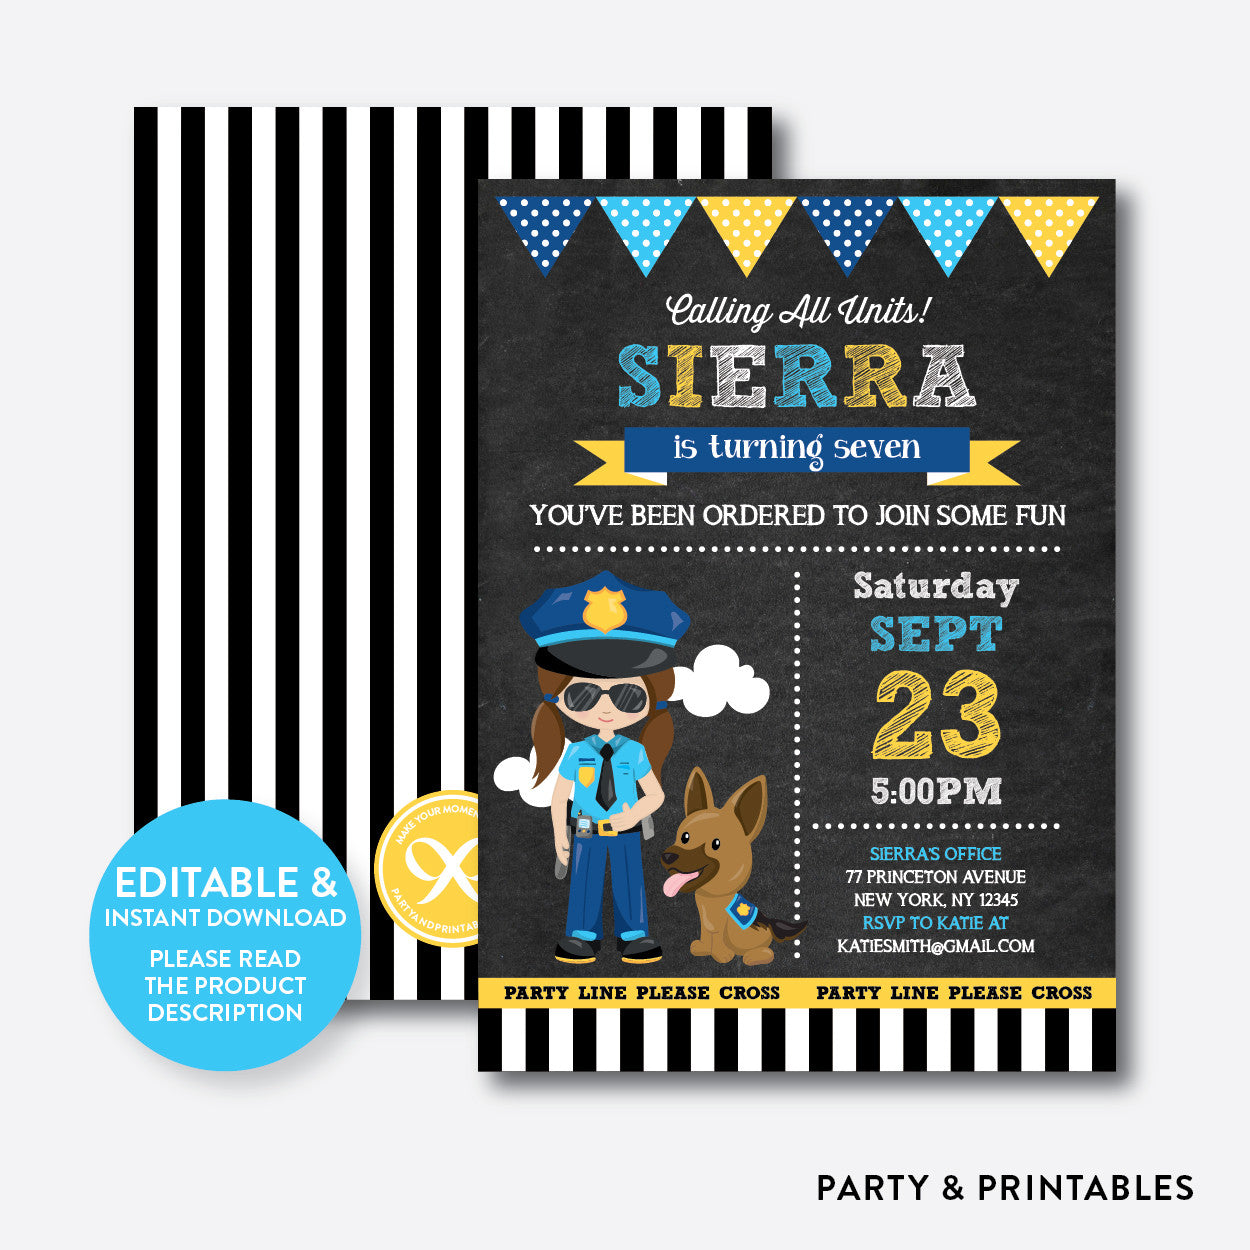 Police Chalkboard Kids Birthday Invitation / Editable / Instant Download (CKB.527), invitation - Party and Printables